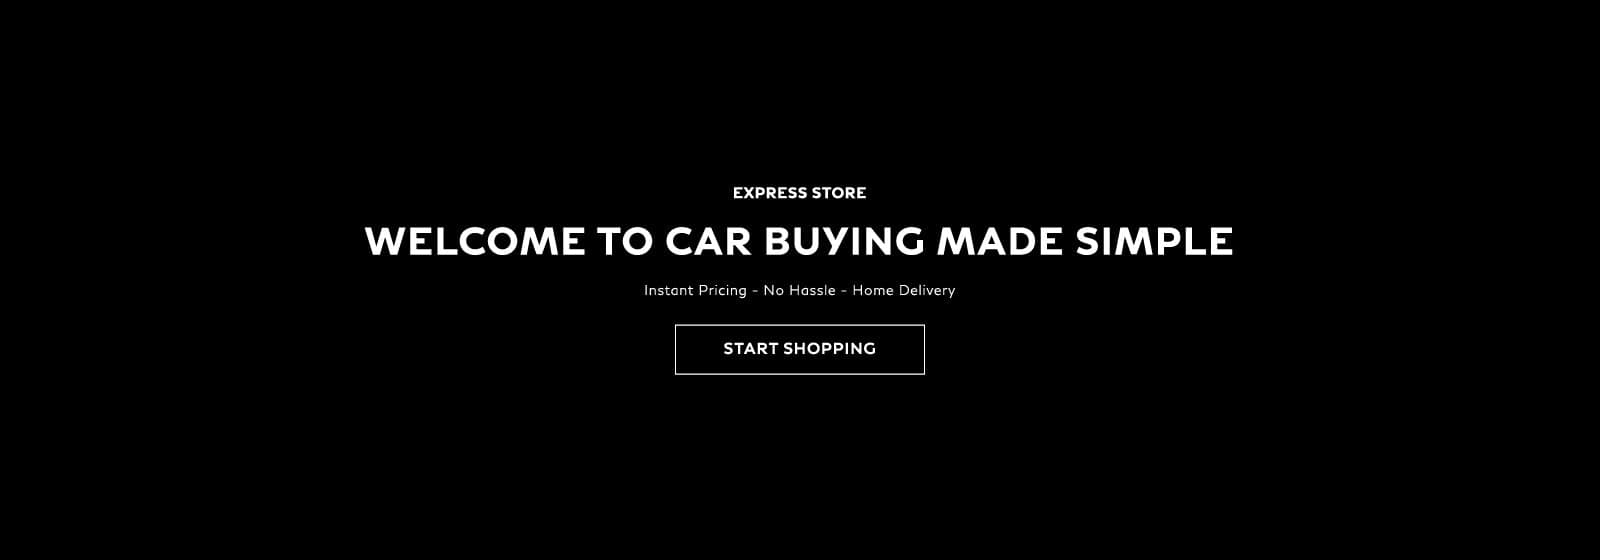 express store. welcome to car buying made simple. start shopping